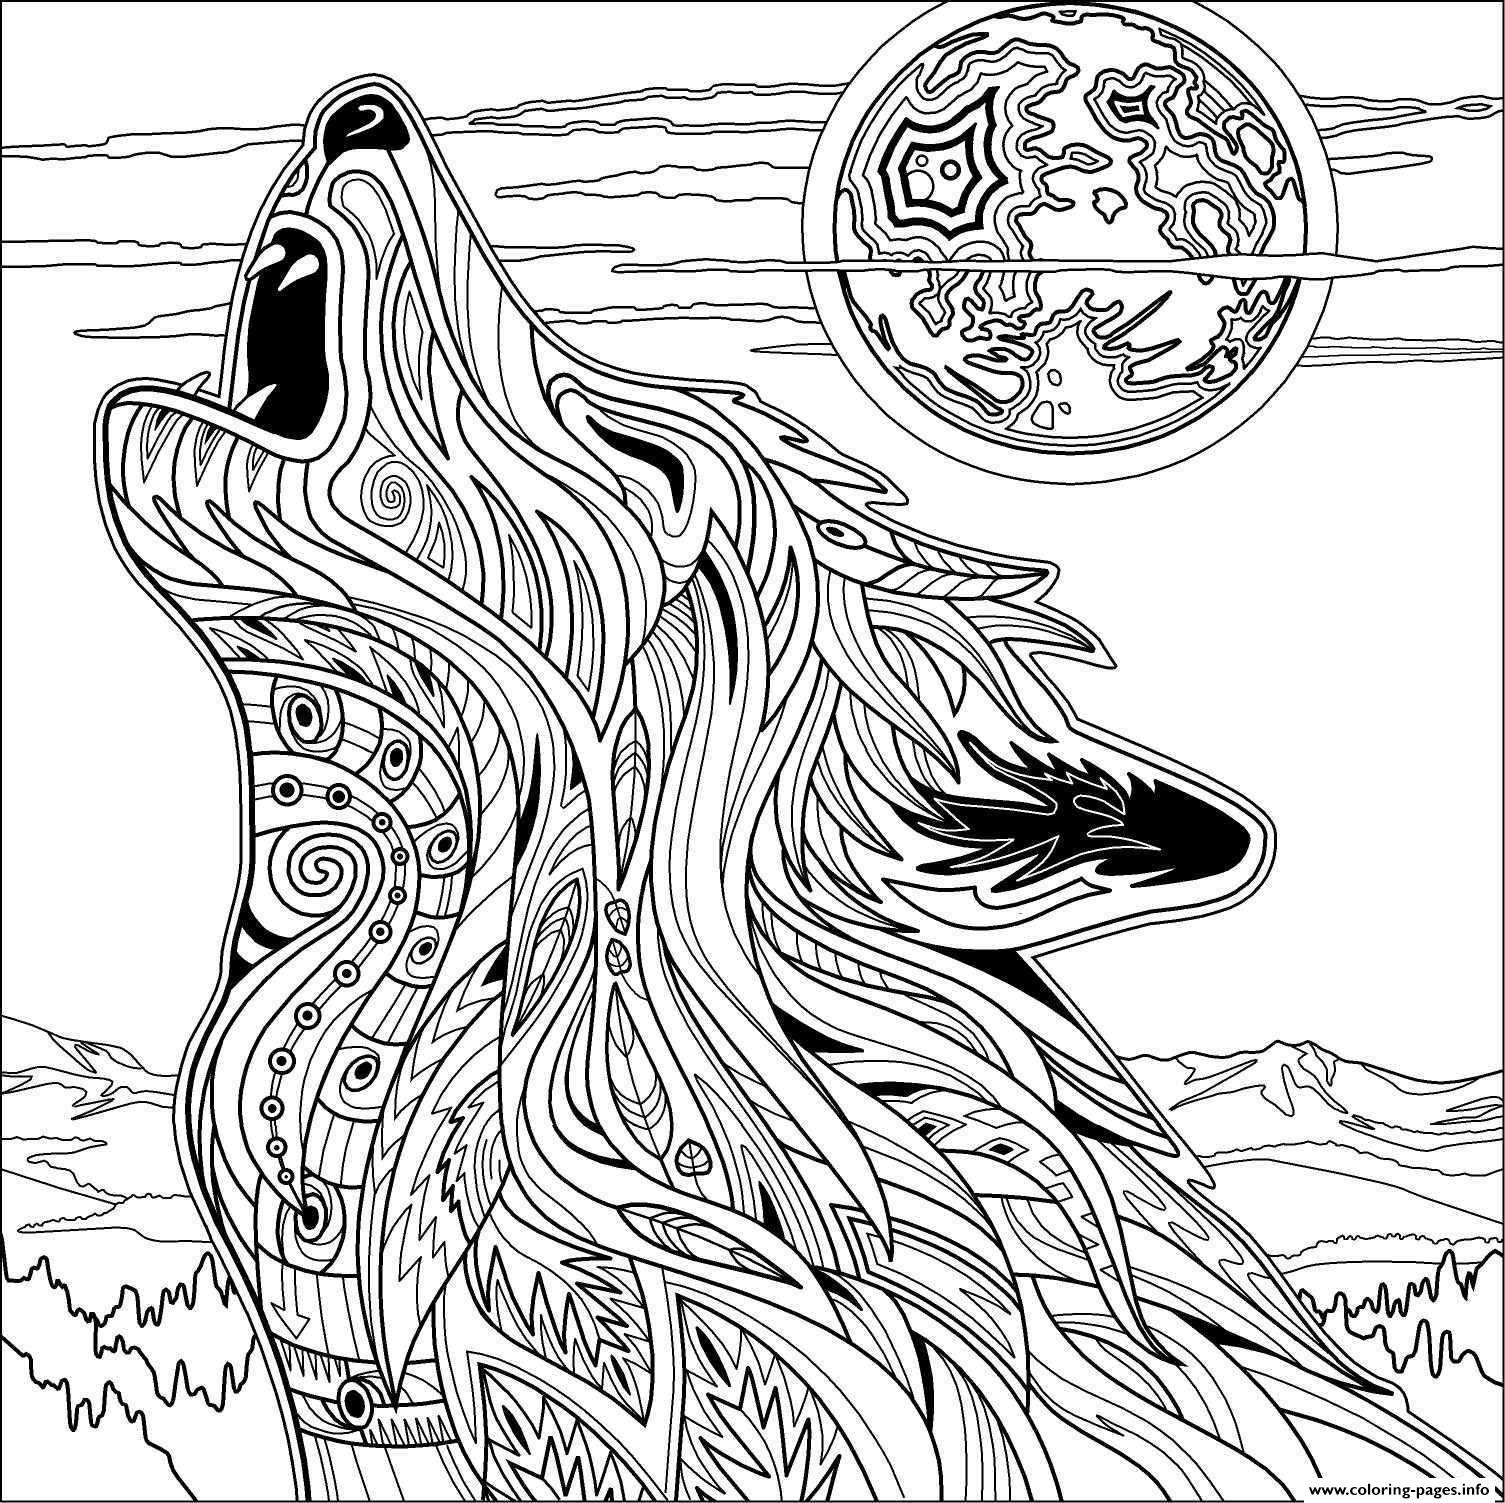 Wolf Coloring Pages for Adults - Wolf for Adult Coloring Pages Printable